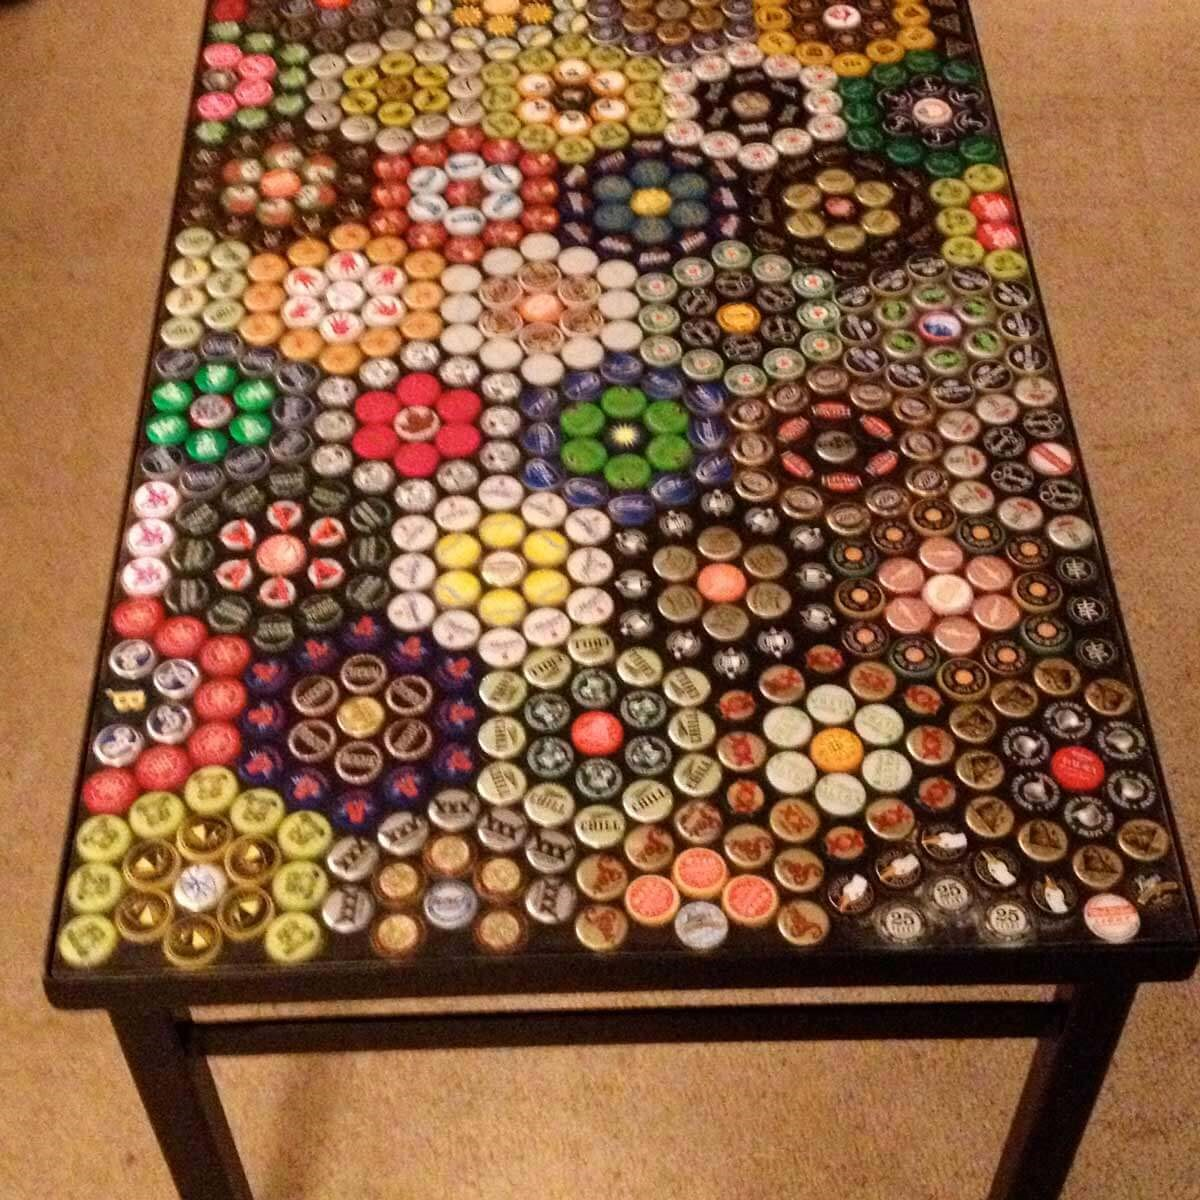 2. Dress Up Your Coffee Table with Bottle Caps via Simphome